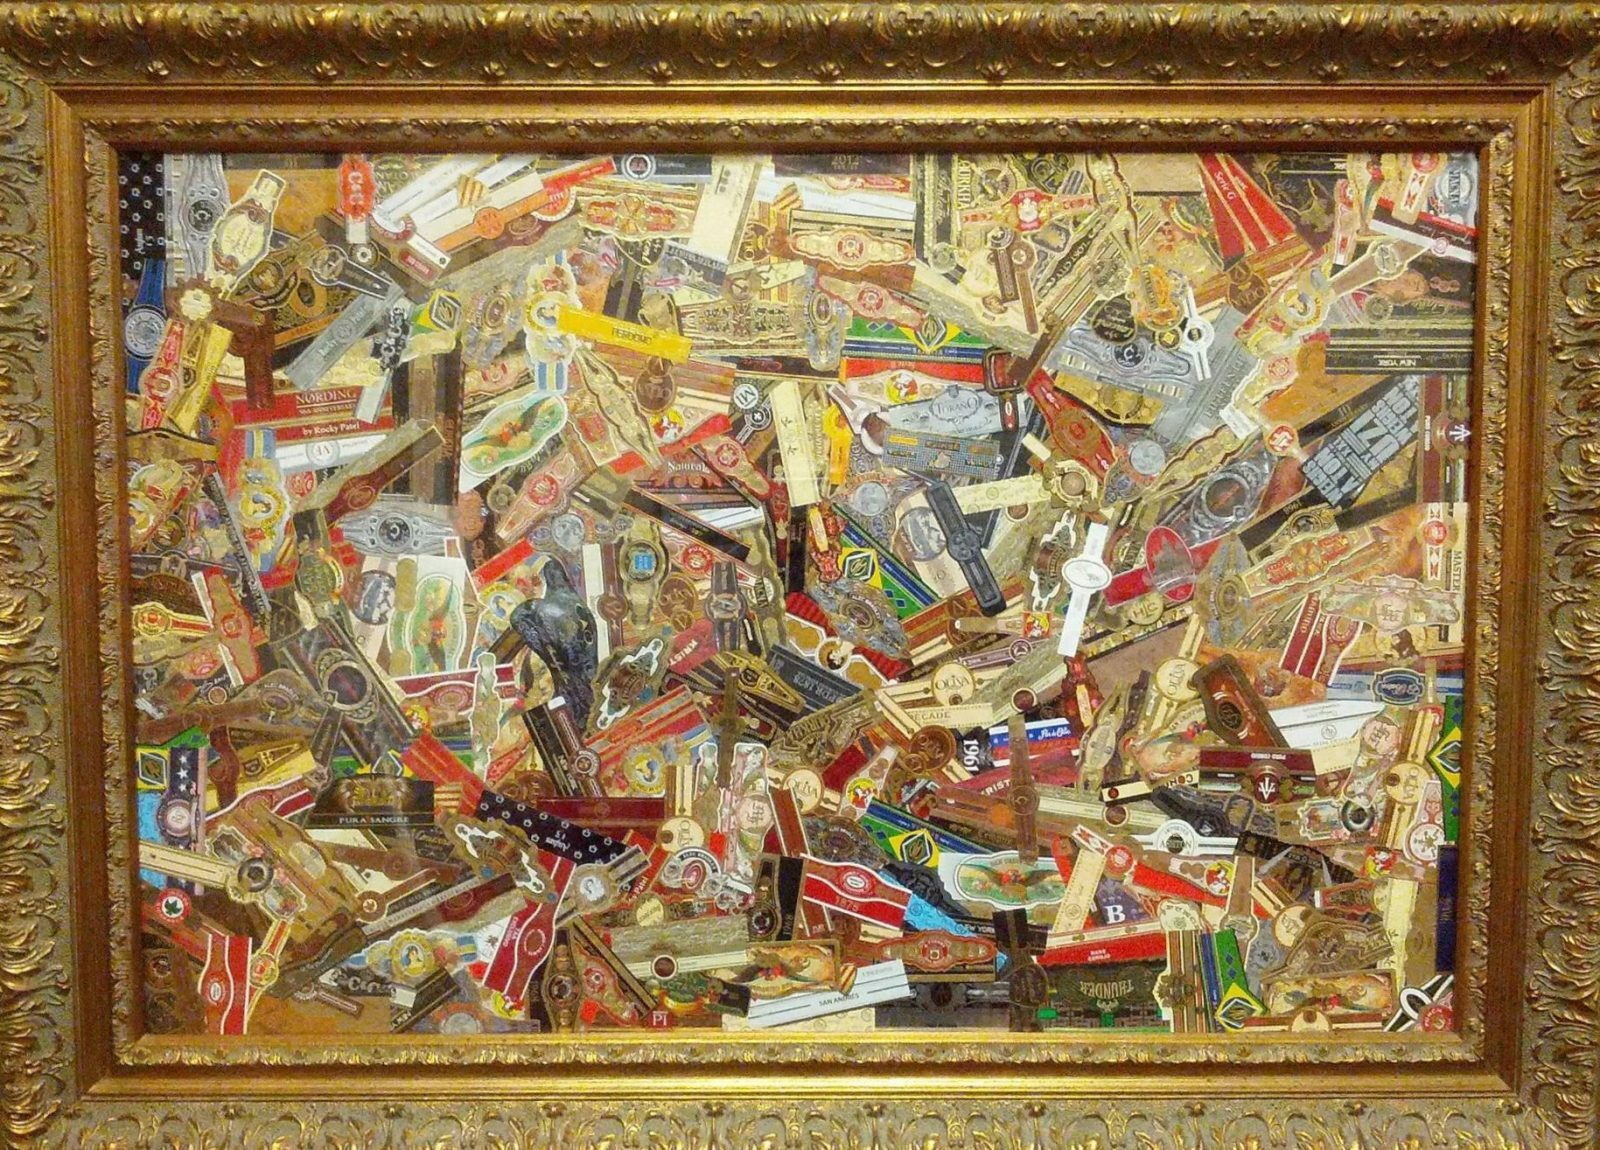 Framed art created by a variety of cigar bands.